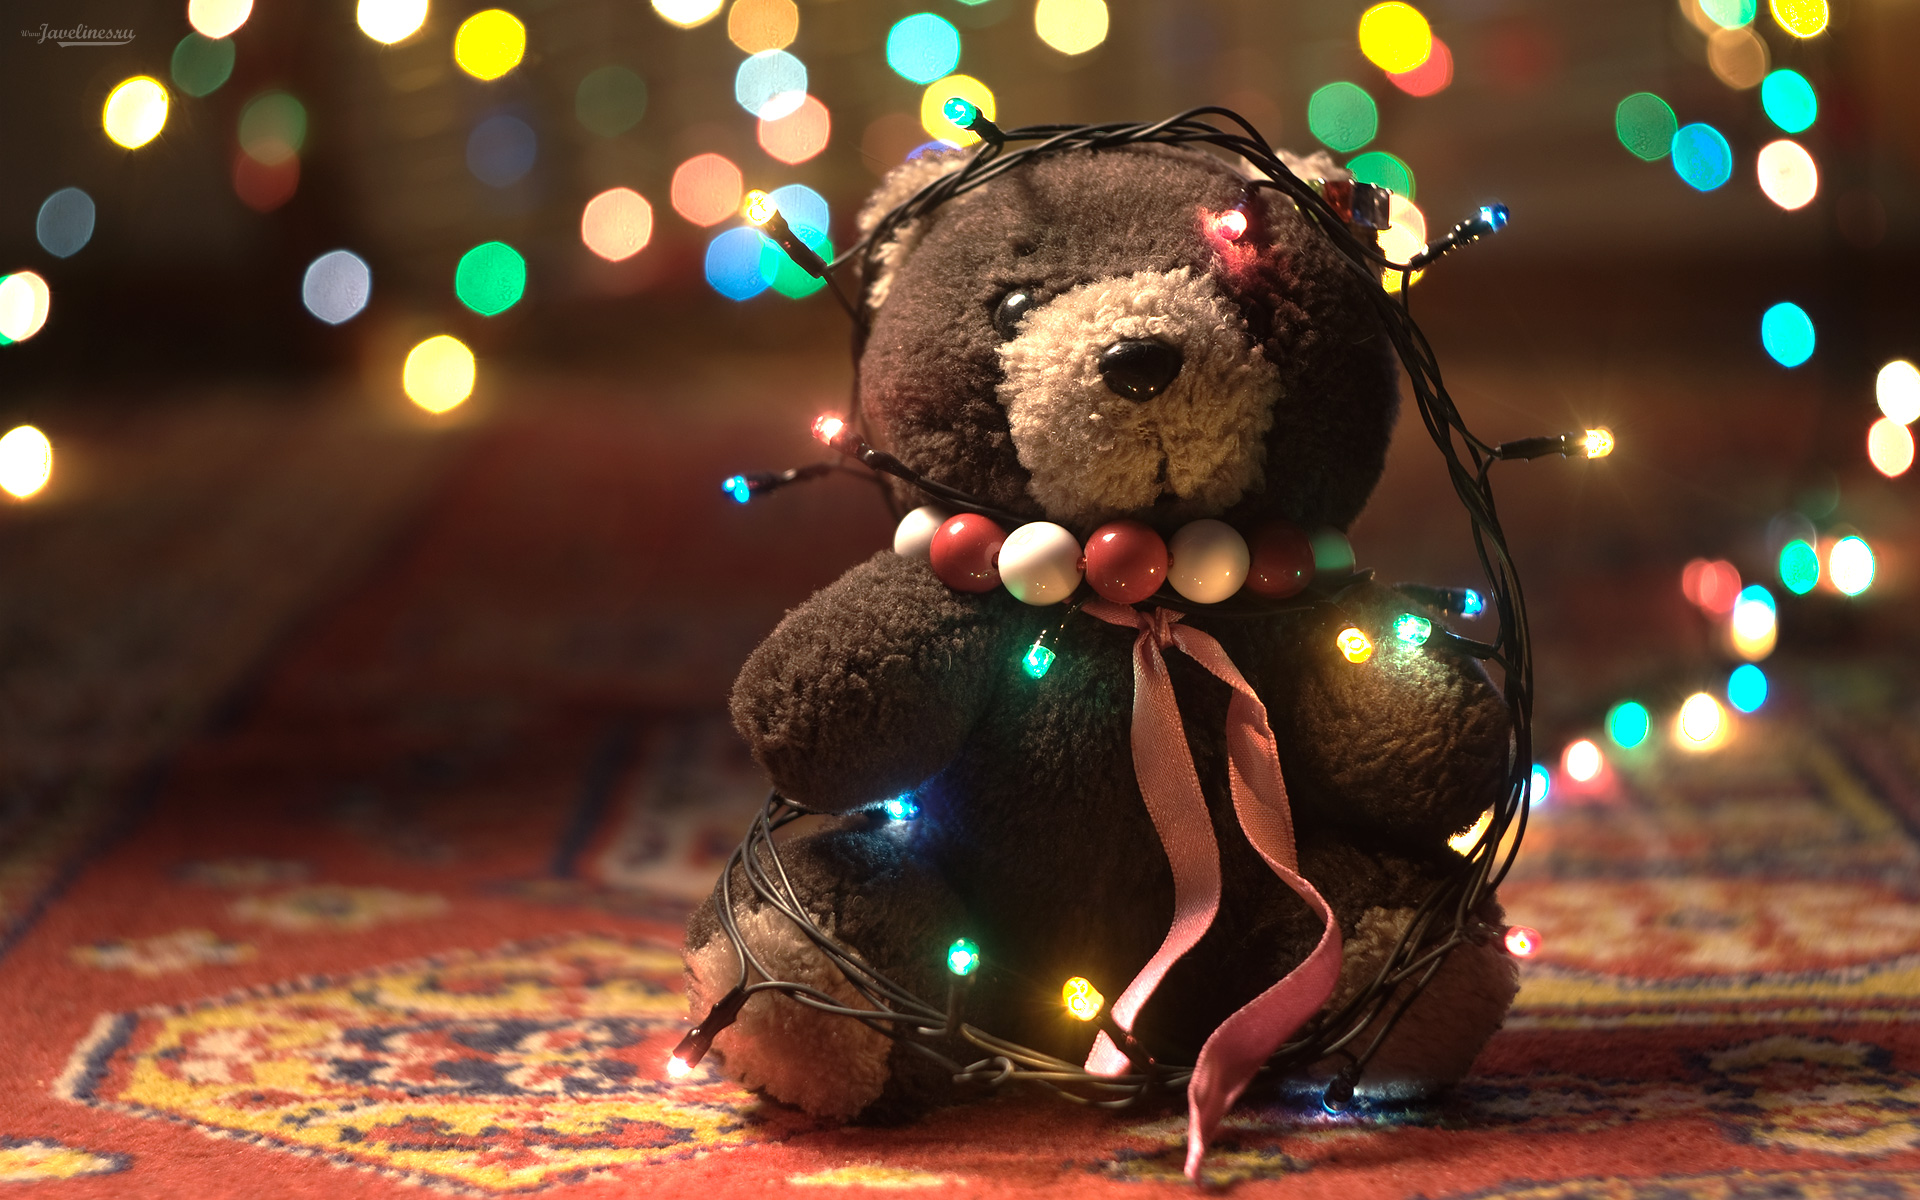 Teddy Bear Wallpaper High Definition